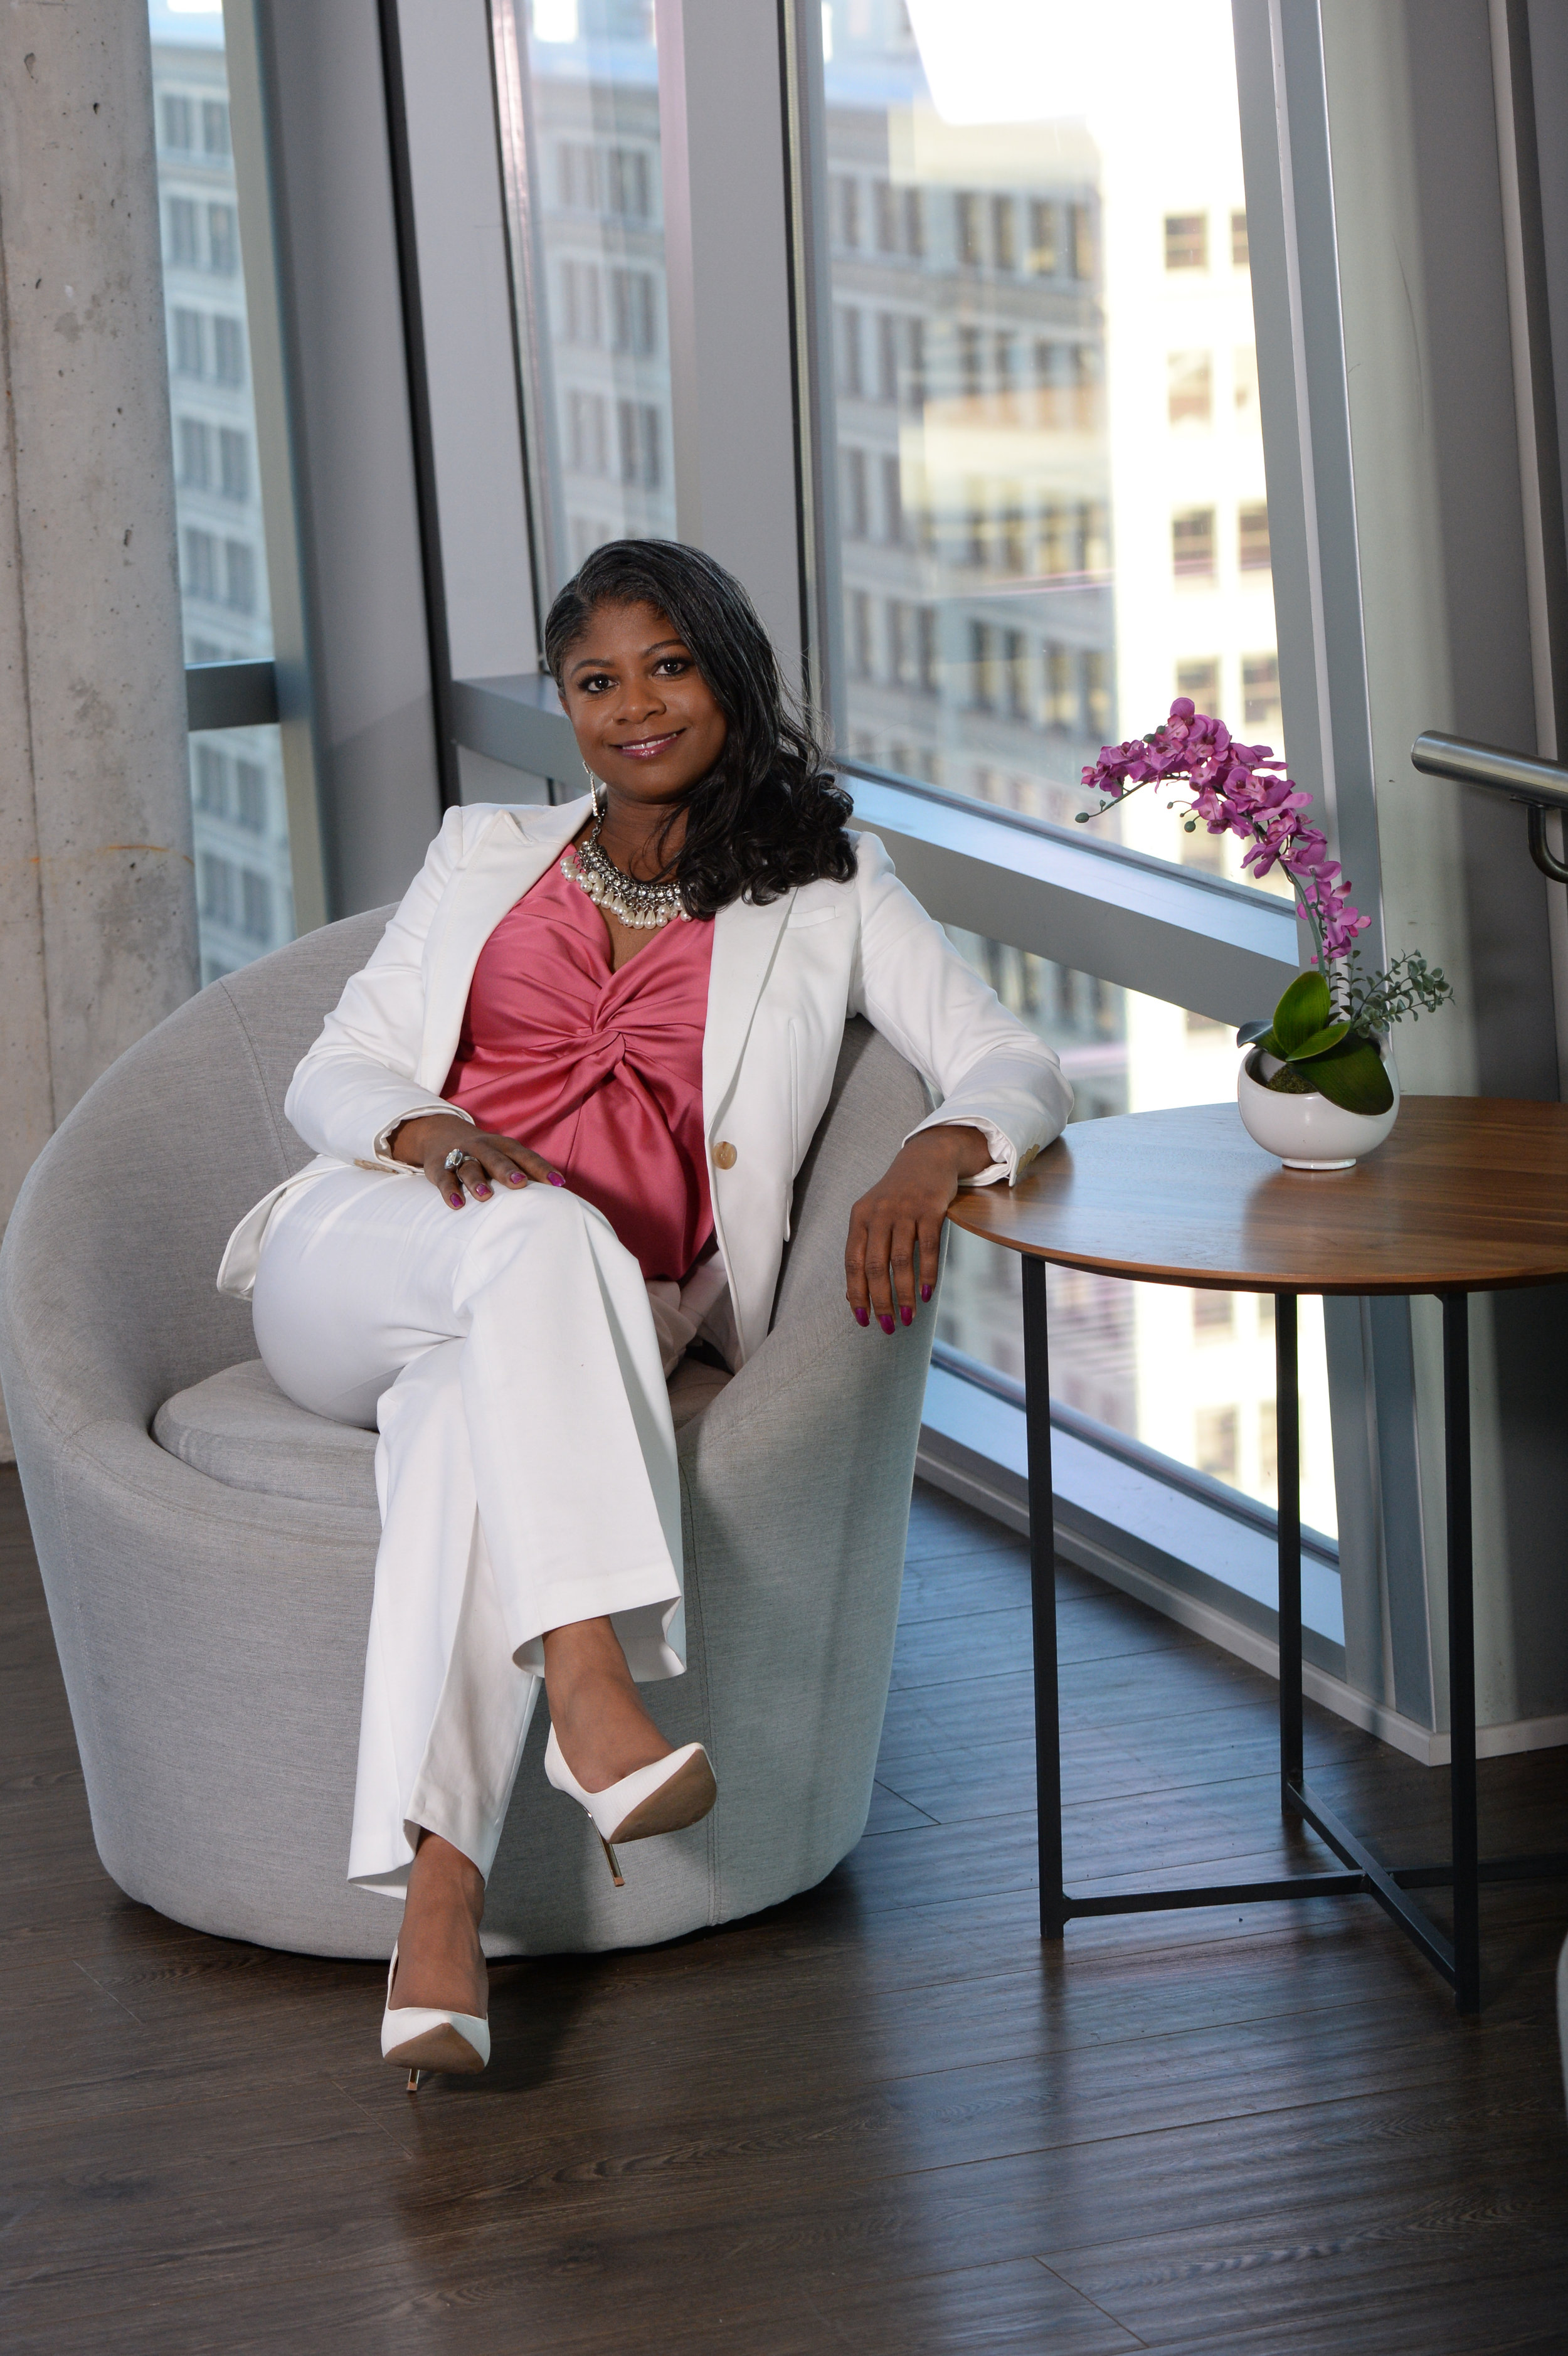 Tamiko Cuellar, CEO & Founder - Dynamite in a small package, fearless and inspiring are just a few words to describe Tamiko Cuellar, the CEO and Founder of Pursue Your Purpose LLC, a global coaching, consulting and training firm for emerging entrepreneurs, corporate intrapreneurs, and leaders. She is a proven leader in the international business community and has been invited to speak at the U.S. Embassy, the University of Namibia (Africa), the University of South Africa, Microsoft, First Bank, the City of St. Louis, the Chamber of Commerce, and more. She has been a guest contributor and feature on Forbes.com, The Huffington Post, The Business Journals, Good Morning Namibia, Wake Up Nigeria, One Africa TV, and several other international media outlets. She oversees a team in 5 countries and is also the President & Founder of Africa Trade Partners LLC for exporters from Africa to the U.S.Tamiko was nominated for the 2013 Business Influencer Award and in 2016 recognized by The Women's Business Journals as a Woman on the Move. In 2016-17, she was appointed as a Mentor to emerging entrepreneurs in Africa as part of Tony Elumelu's Entrepreneurship Programme. In addition to being an International Business Strategist and speaker, Tamiko is also an academic, having taught as a formerAdjunct Professor of Entrepreneurship at City Vision University. She has conducted research on Gen Z in global entrepreneurshipand in 2019, she was selected as one of the prestigious Fulbright Specialists by the United States government and assigned to help launch the first entrepreneurship incubator program at the University of Namibia in Africa.She is a proud member of the Forbes Coaches Council.